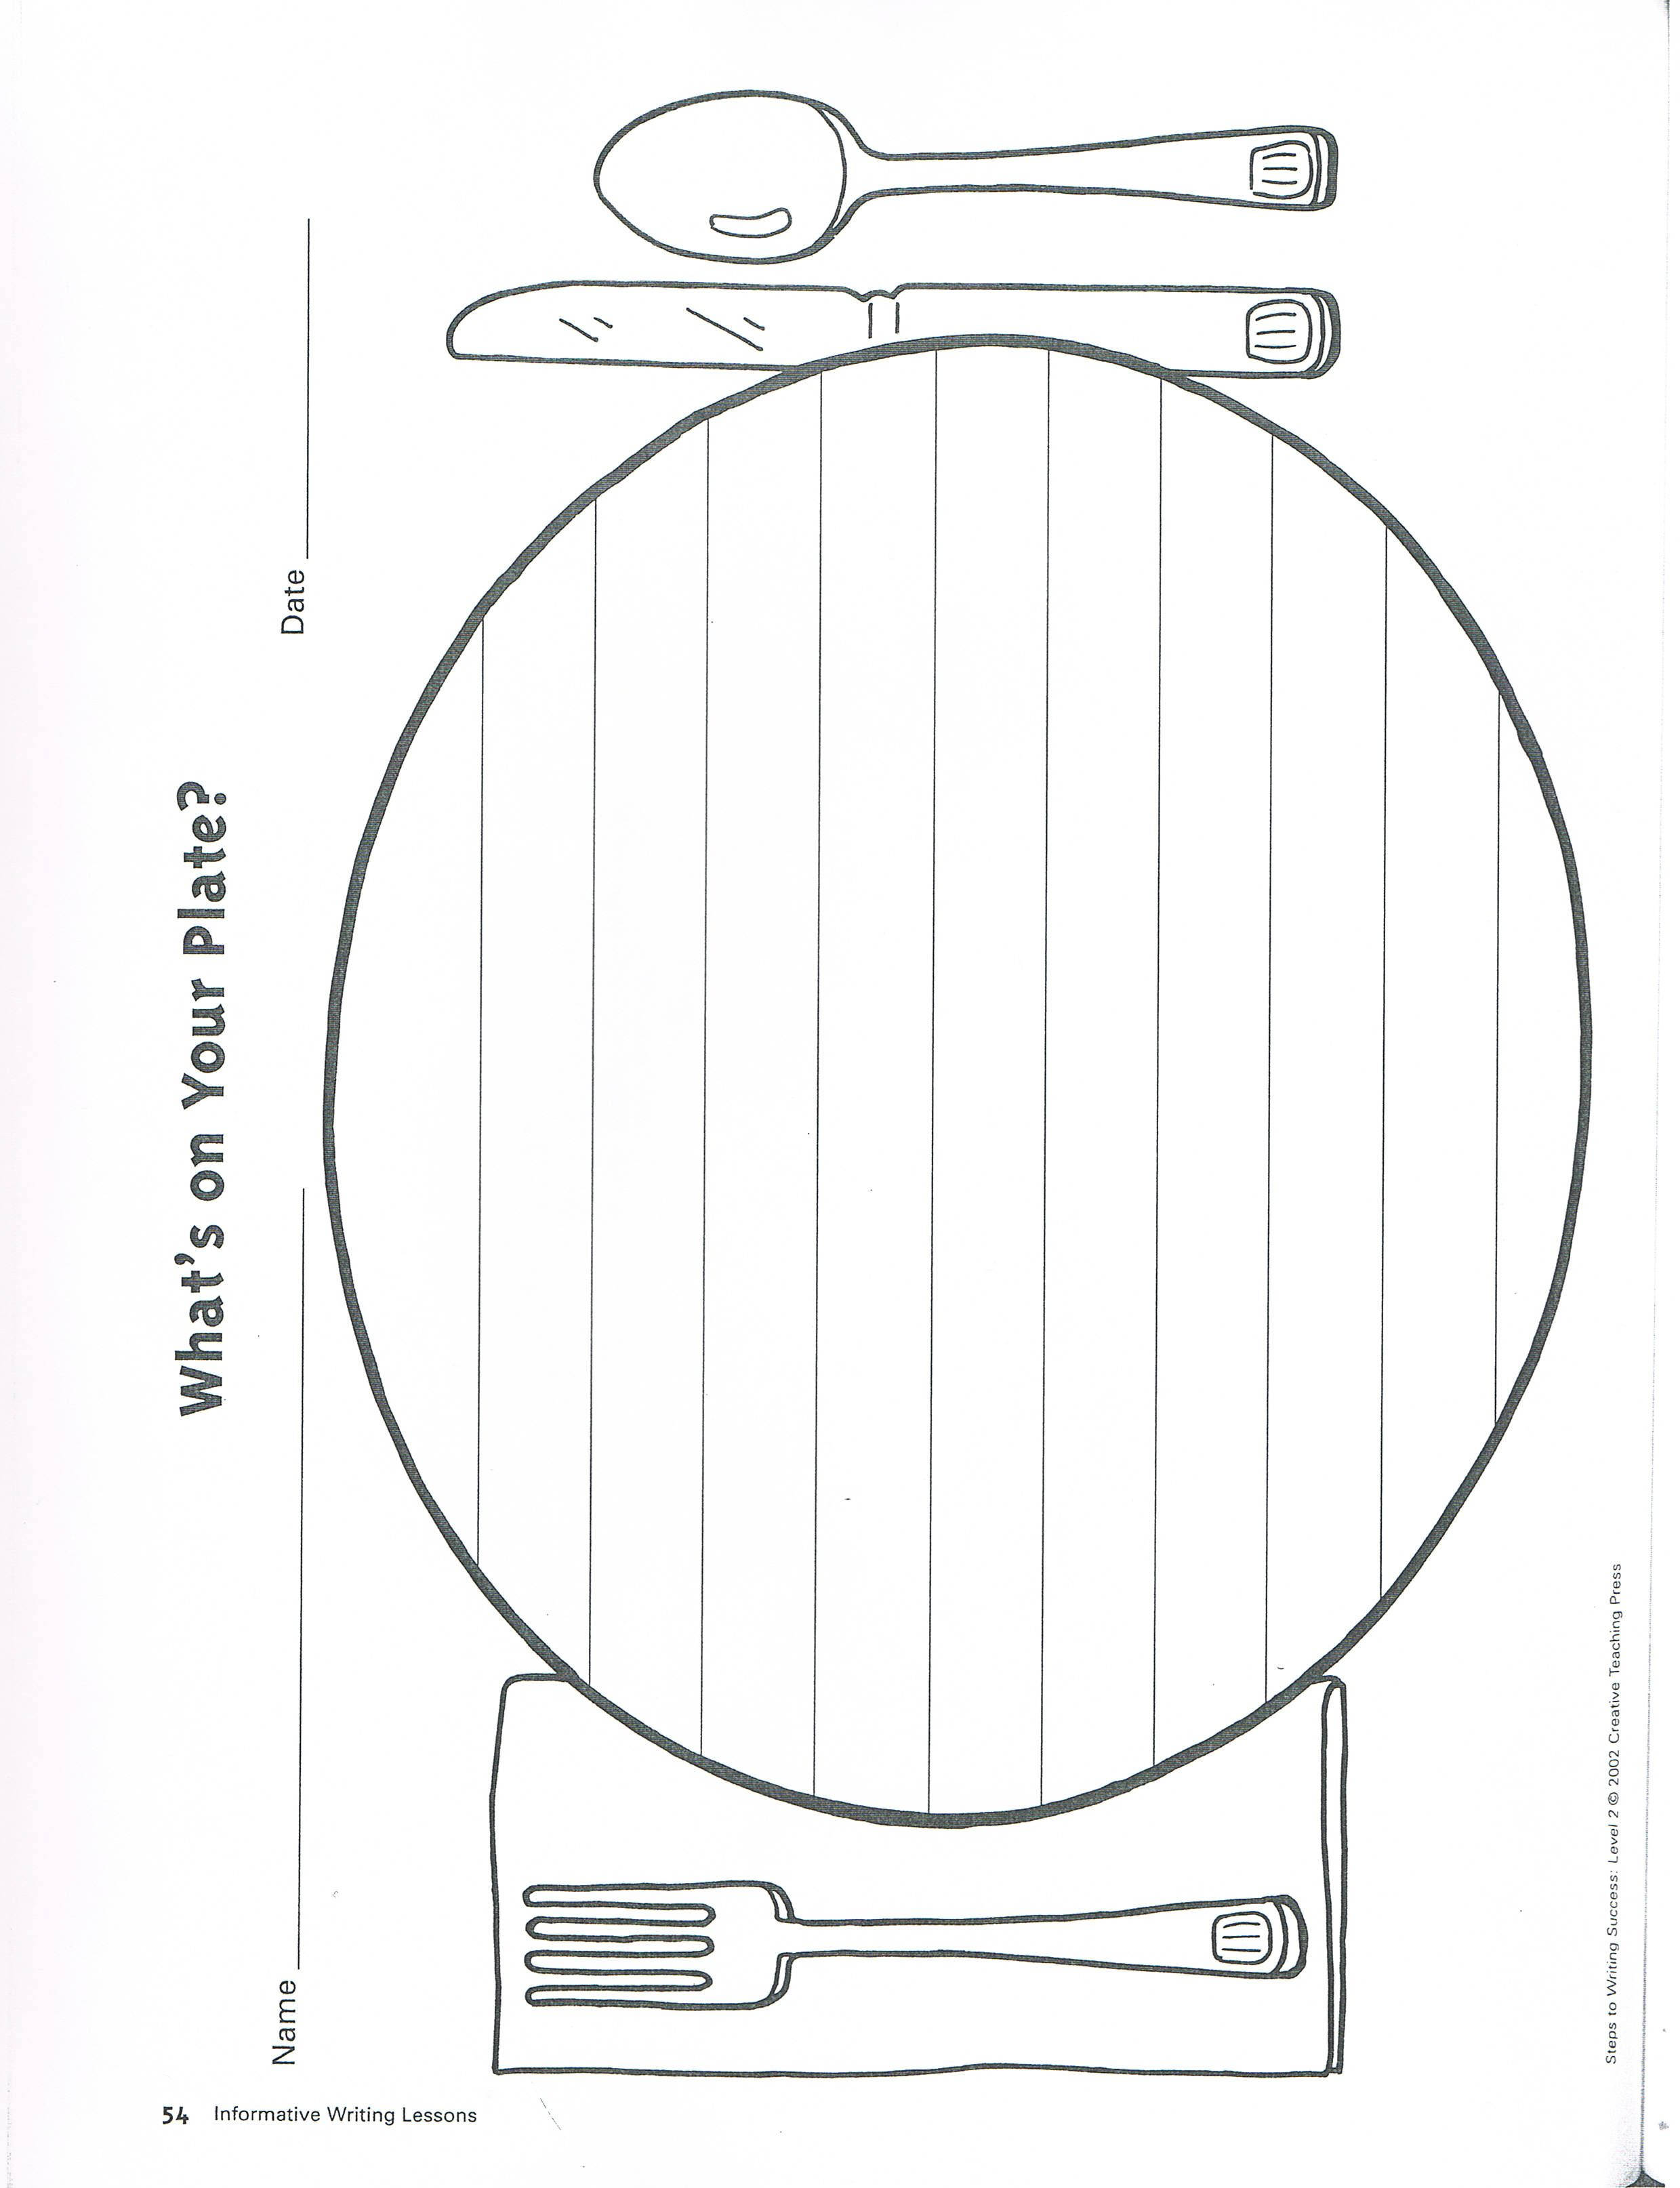 dinner plate stationery dinner plates, writing prompts, line chart,  stationery, stationeries,